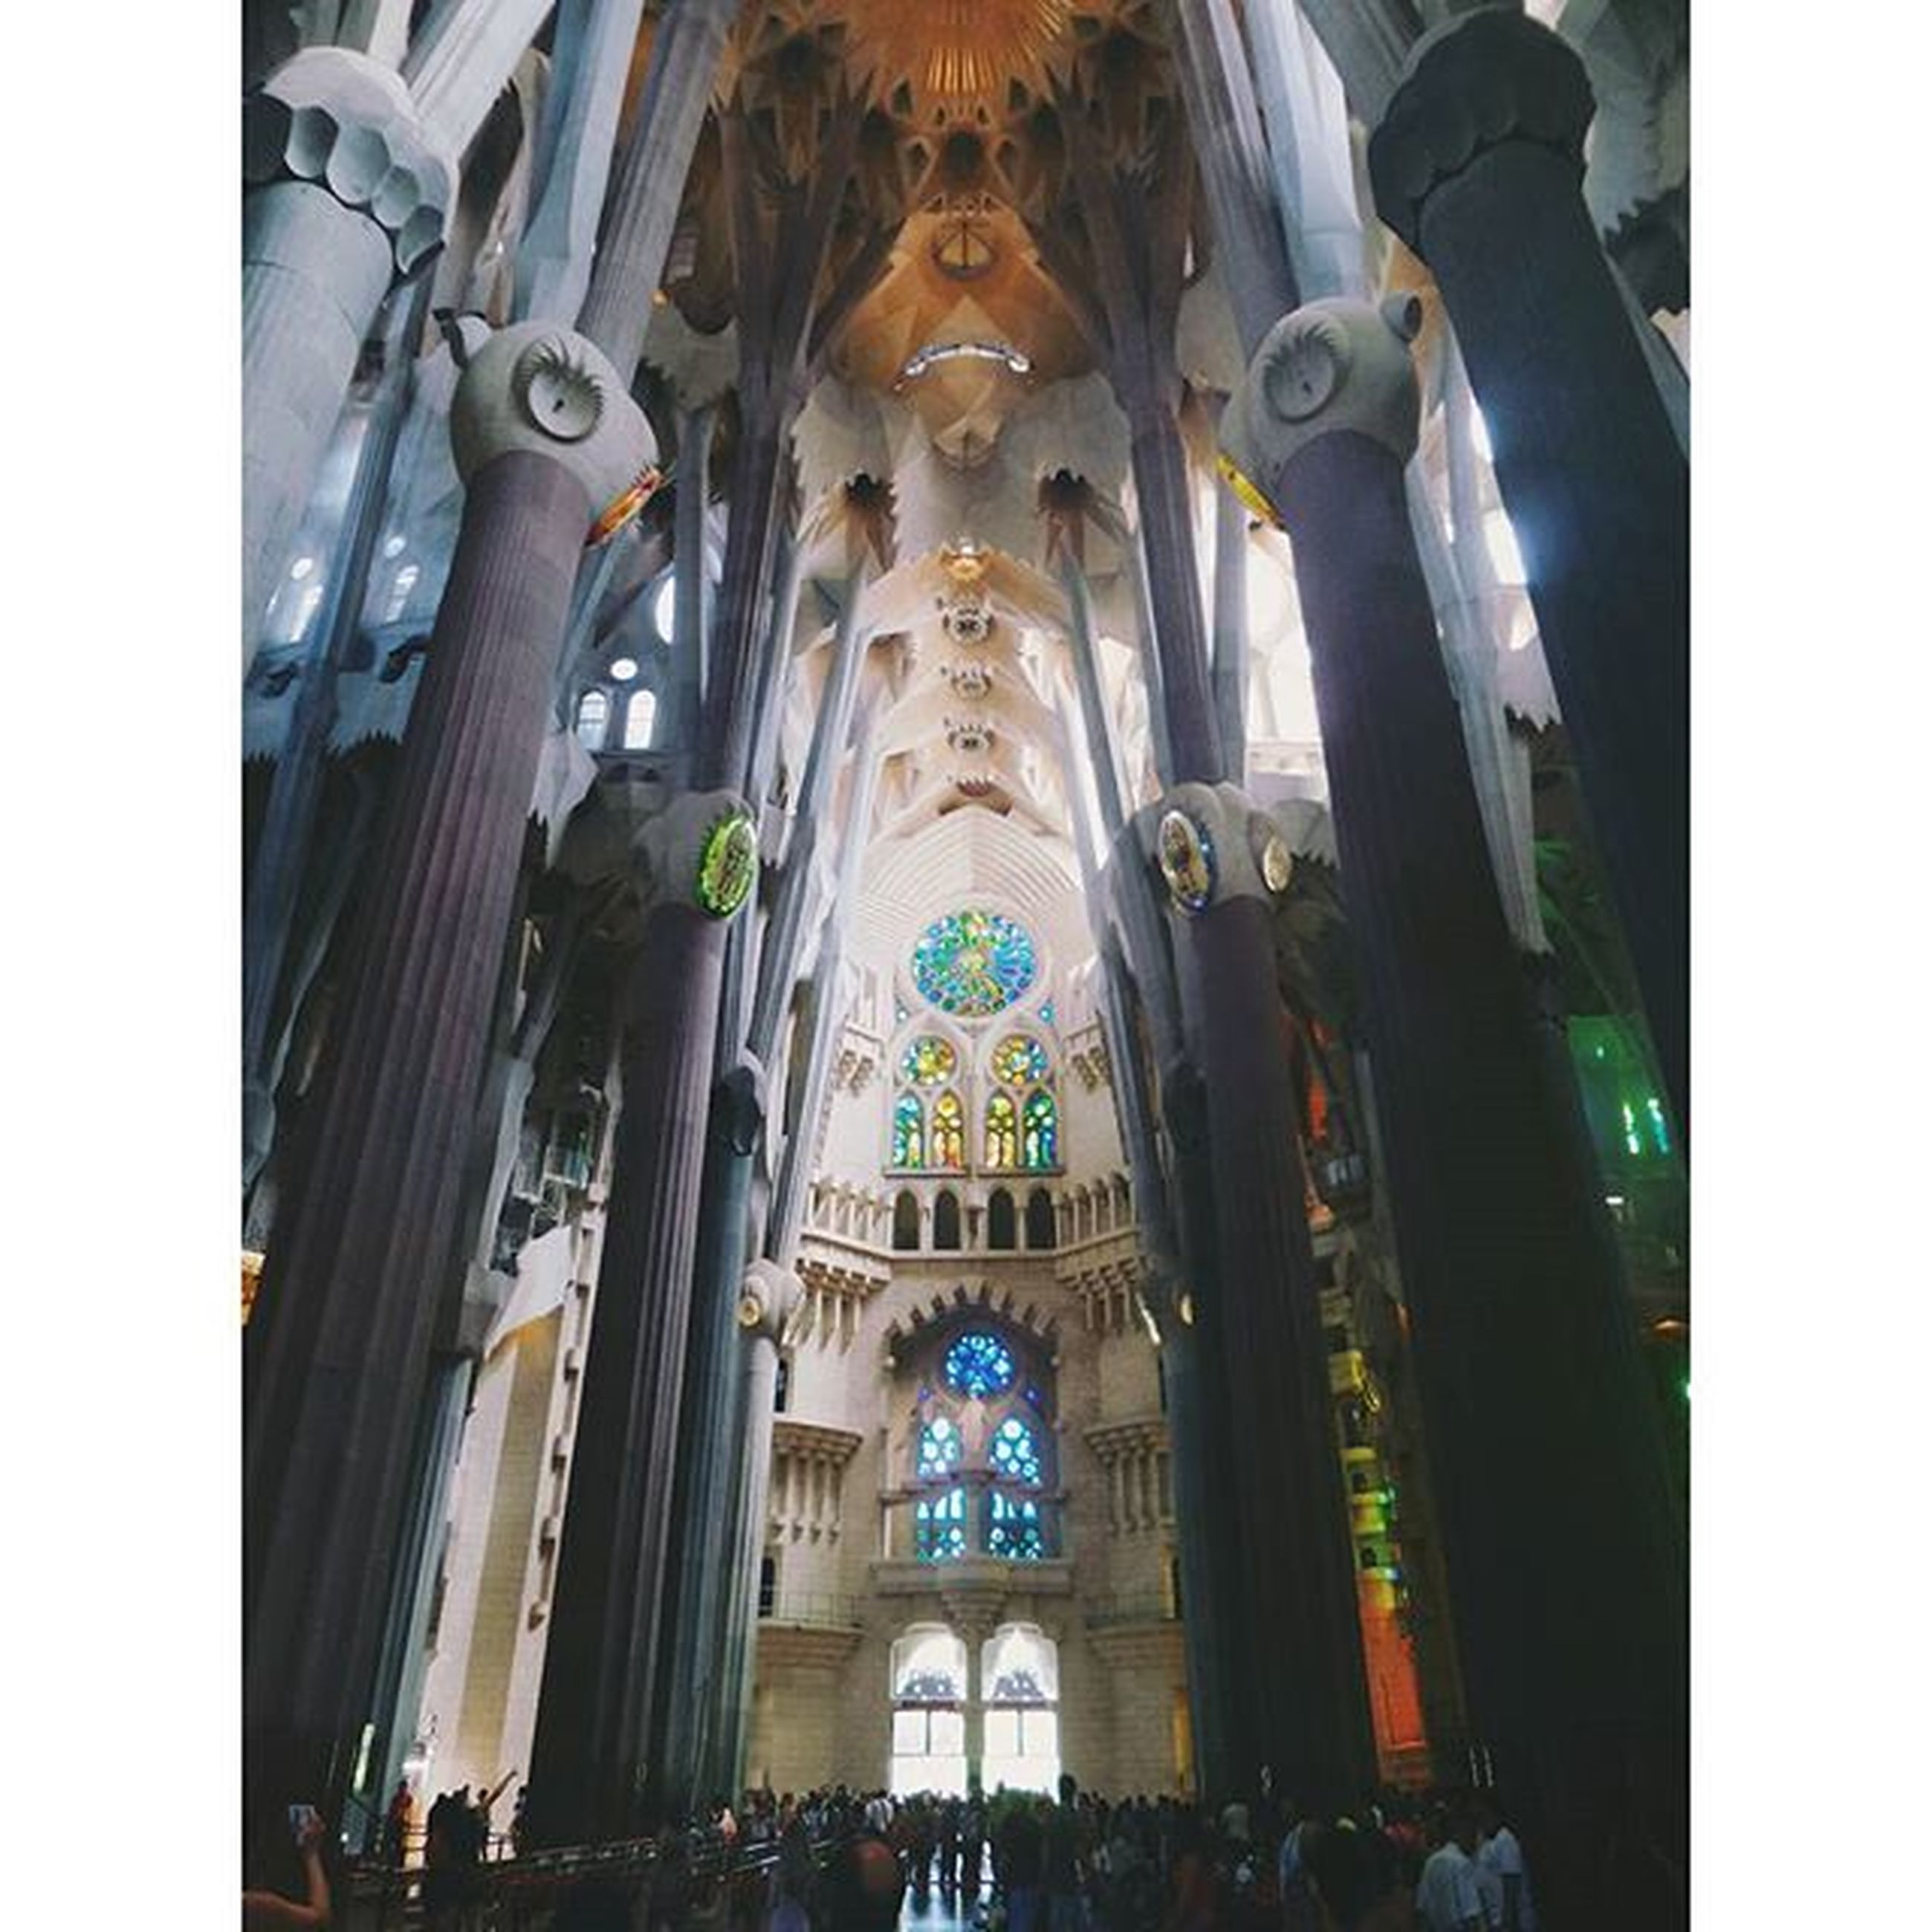 place of worship, religion, architecture, spirituality, built structure, church, transfer print, arch, building exterior, famous place, low angle view, cathedral, large group of people, travel destinations, tourism, travel, auto post production filter